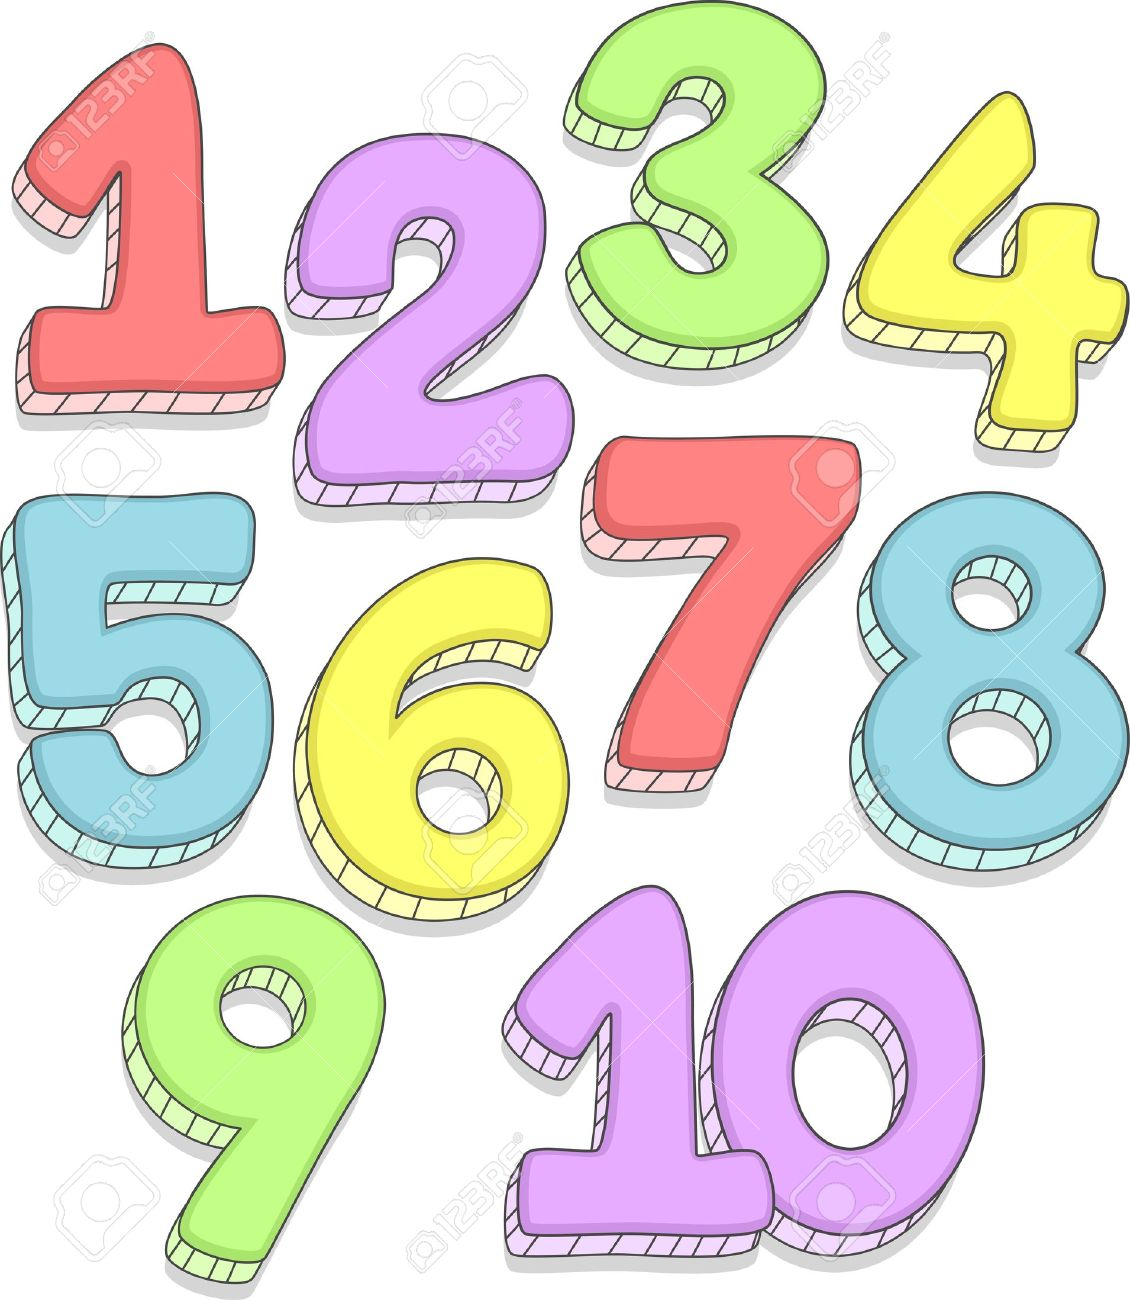 number clipart-number clipart-13